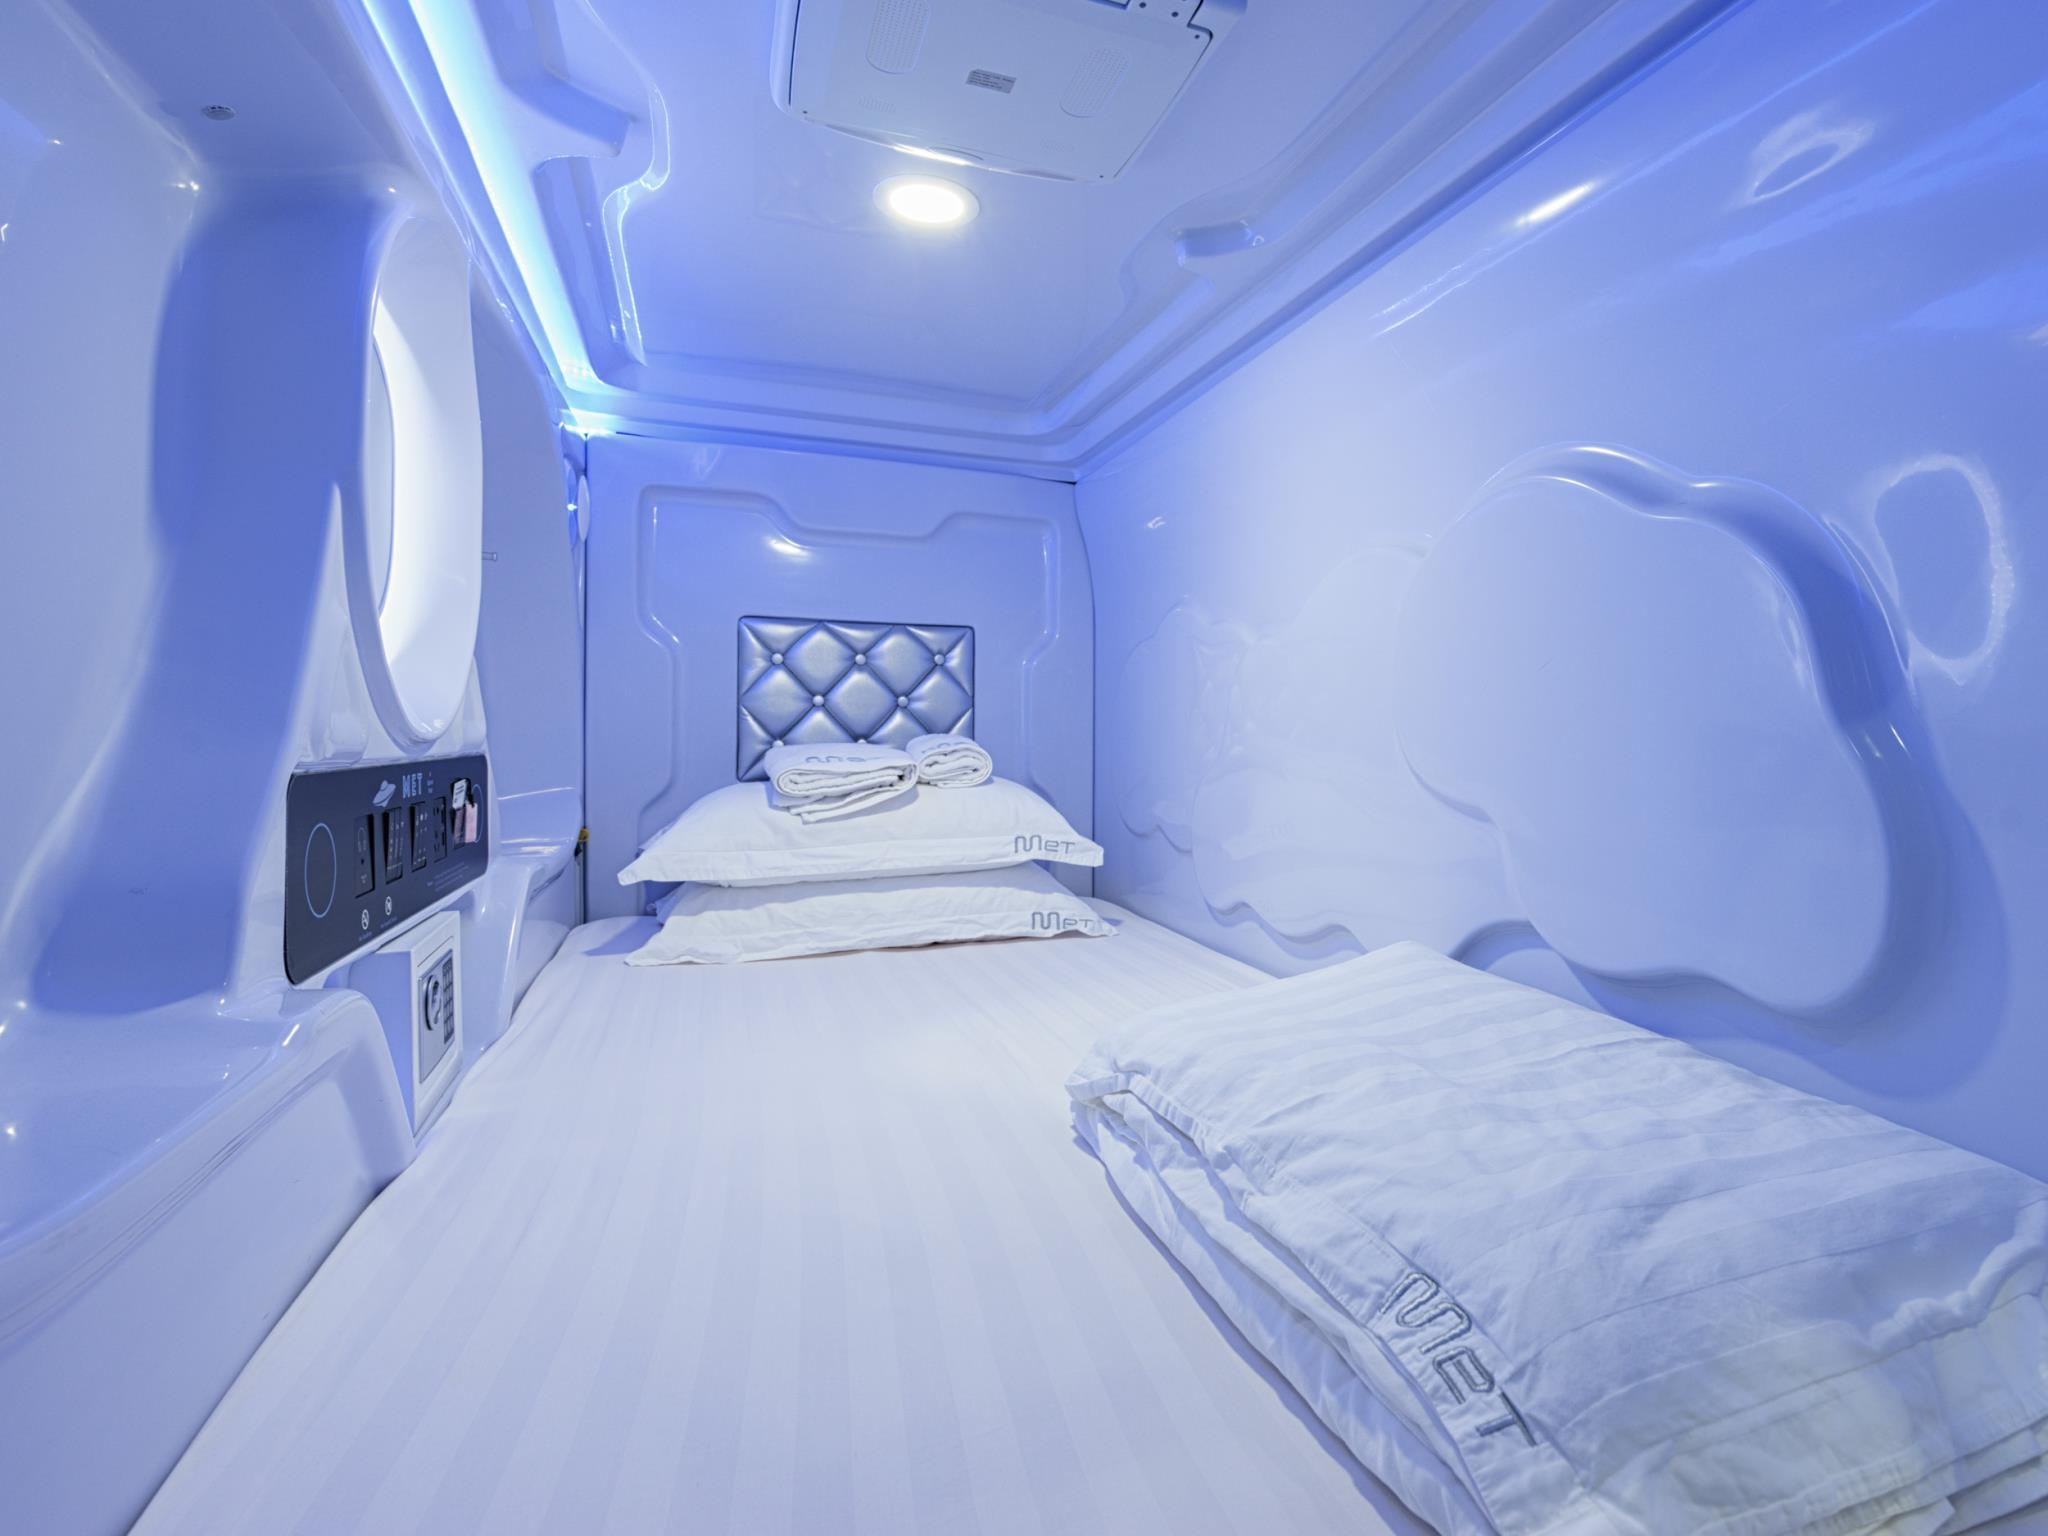 Space Pod Deluxe mit 2 Einzelbetten (Space Pod Deluxe with 2 Single Beds)